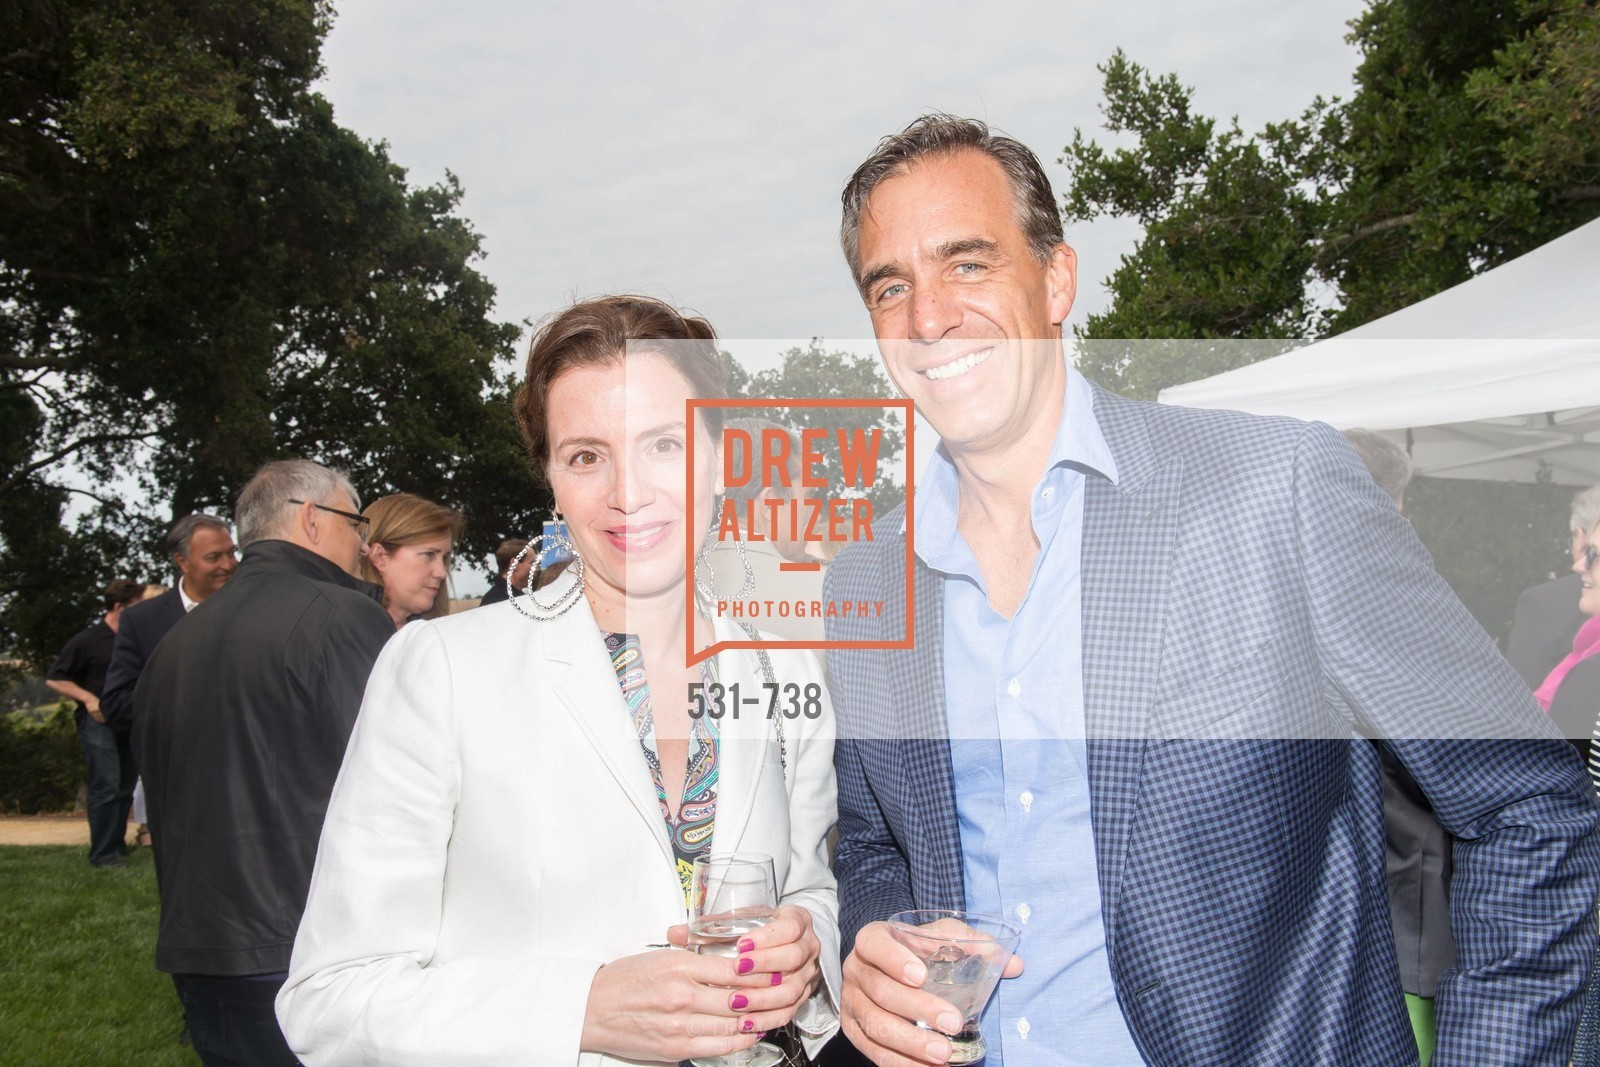 Regina Weichert, David Rottman, LymeAid 2015, US, May 18th, 2015,Drew Altizer, Drew Altizer Photography, full-service agency, private events, San Francisco photographer, photographer california